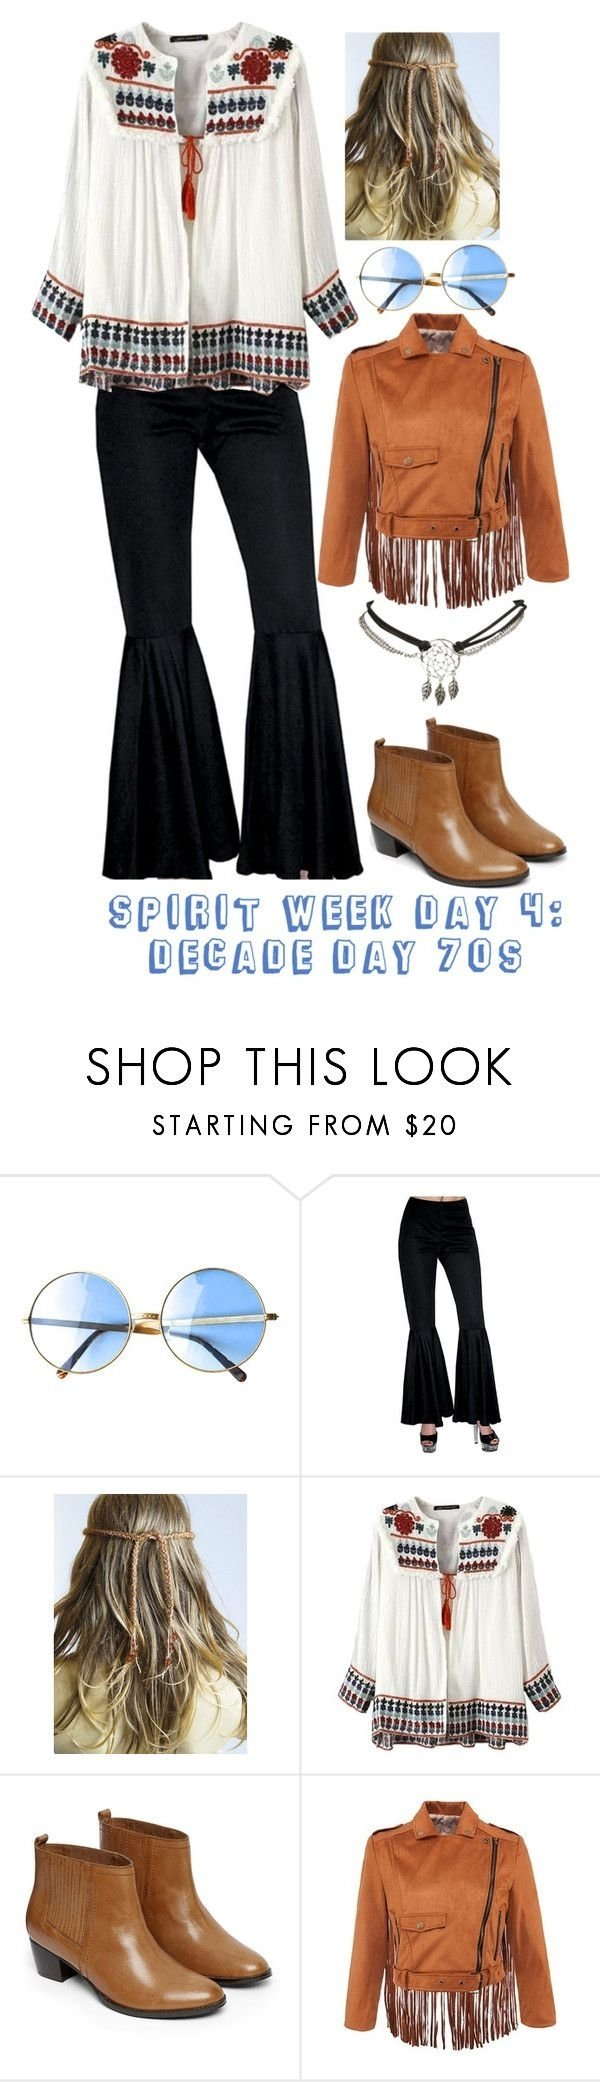 10 Cute Homecoming Dress Up Days Ideas 293 best asb images on pinterest homecoming spirit week student 1